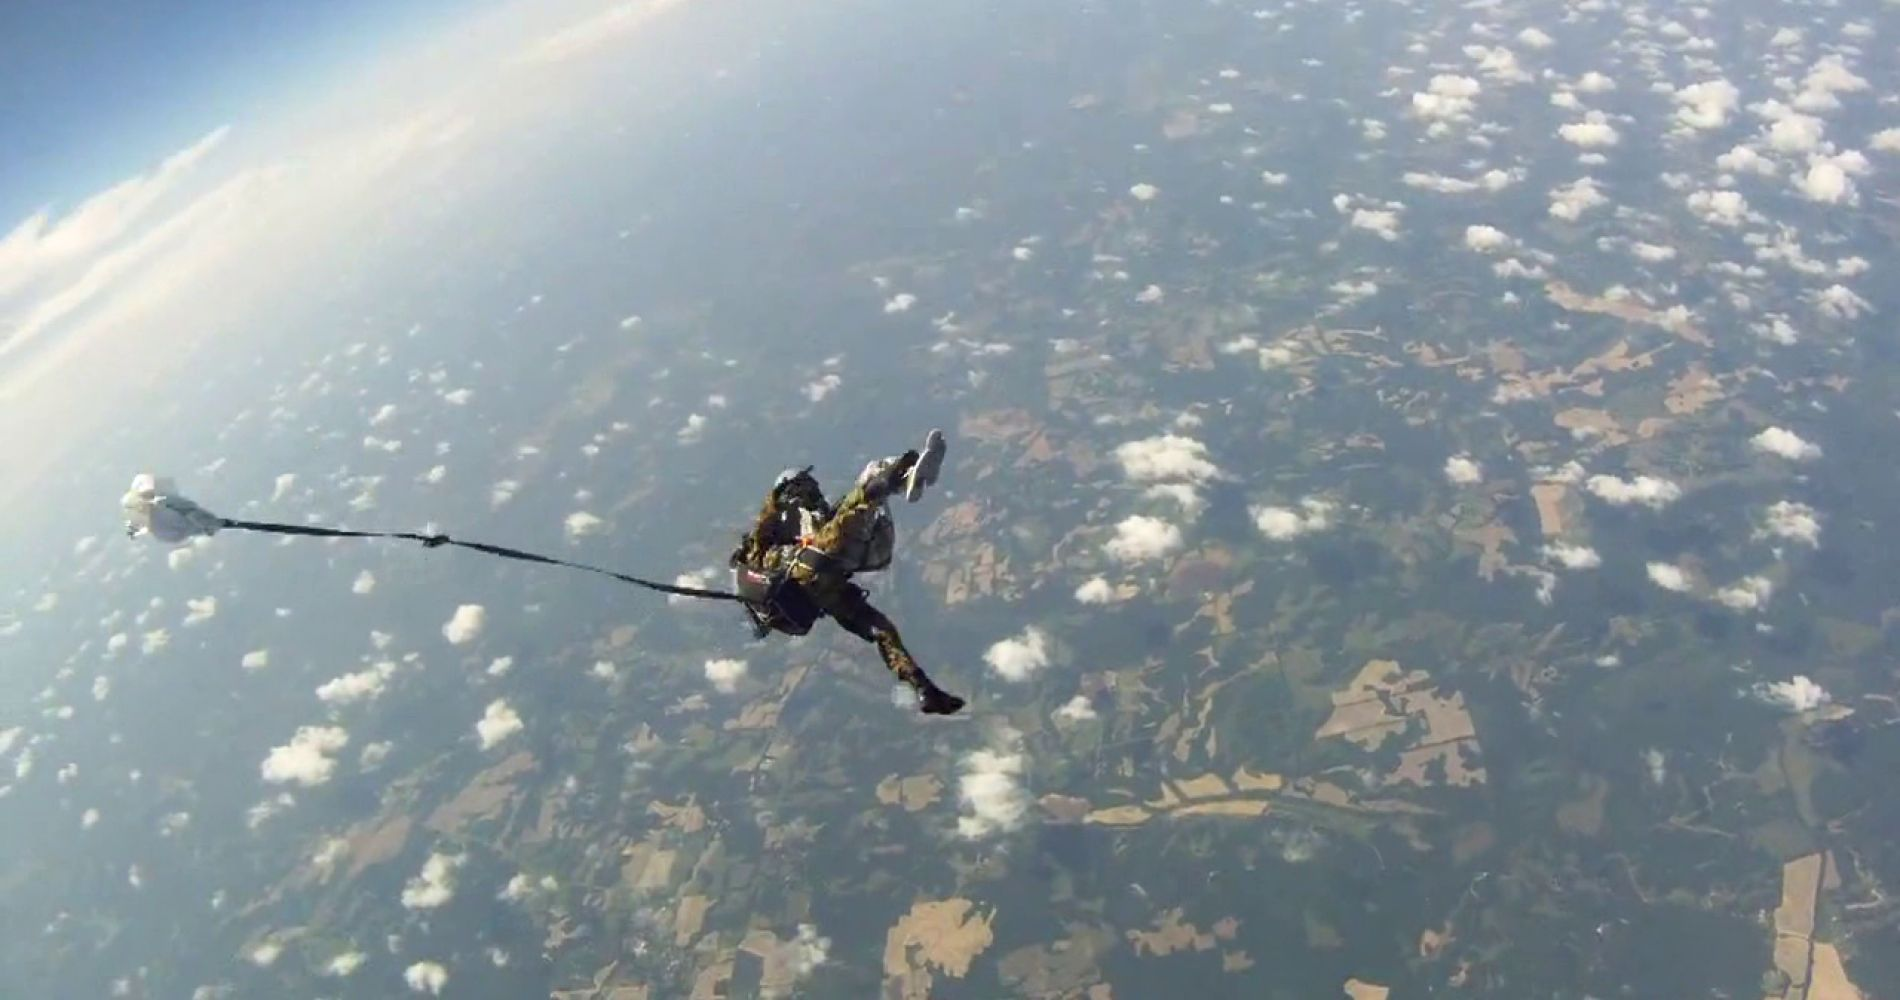 HALO Tandem Jumps Tinggly Experience Gift